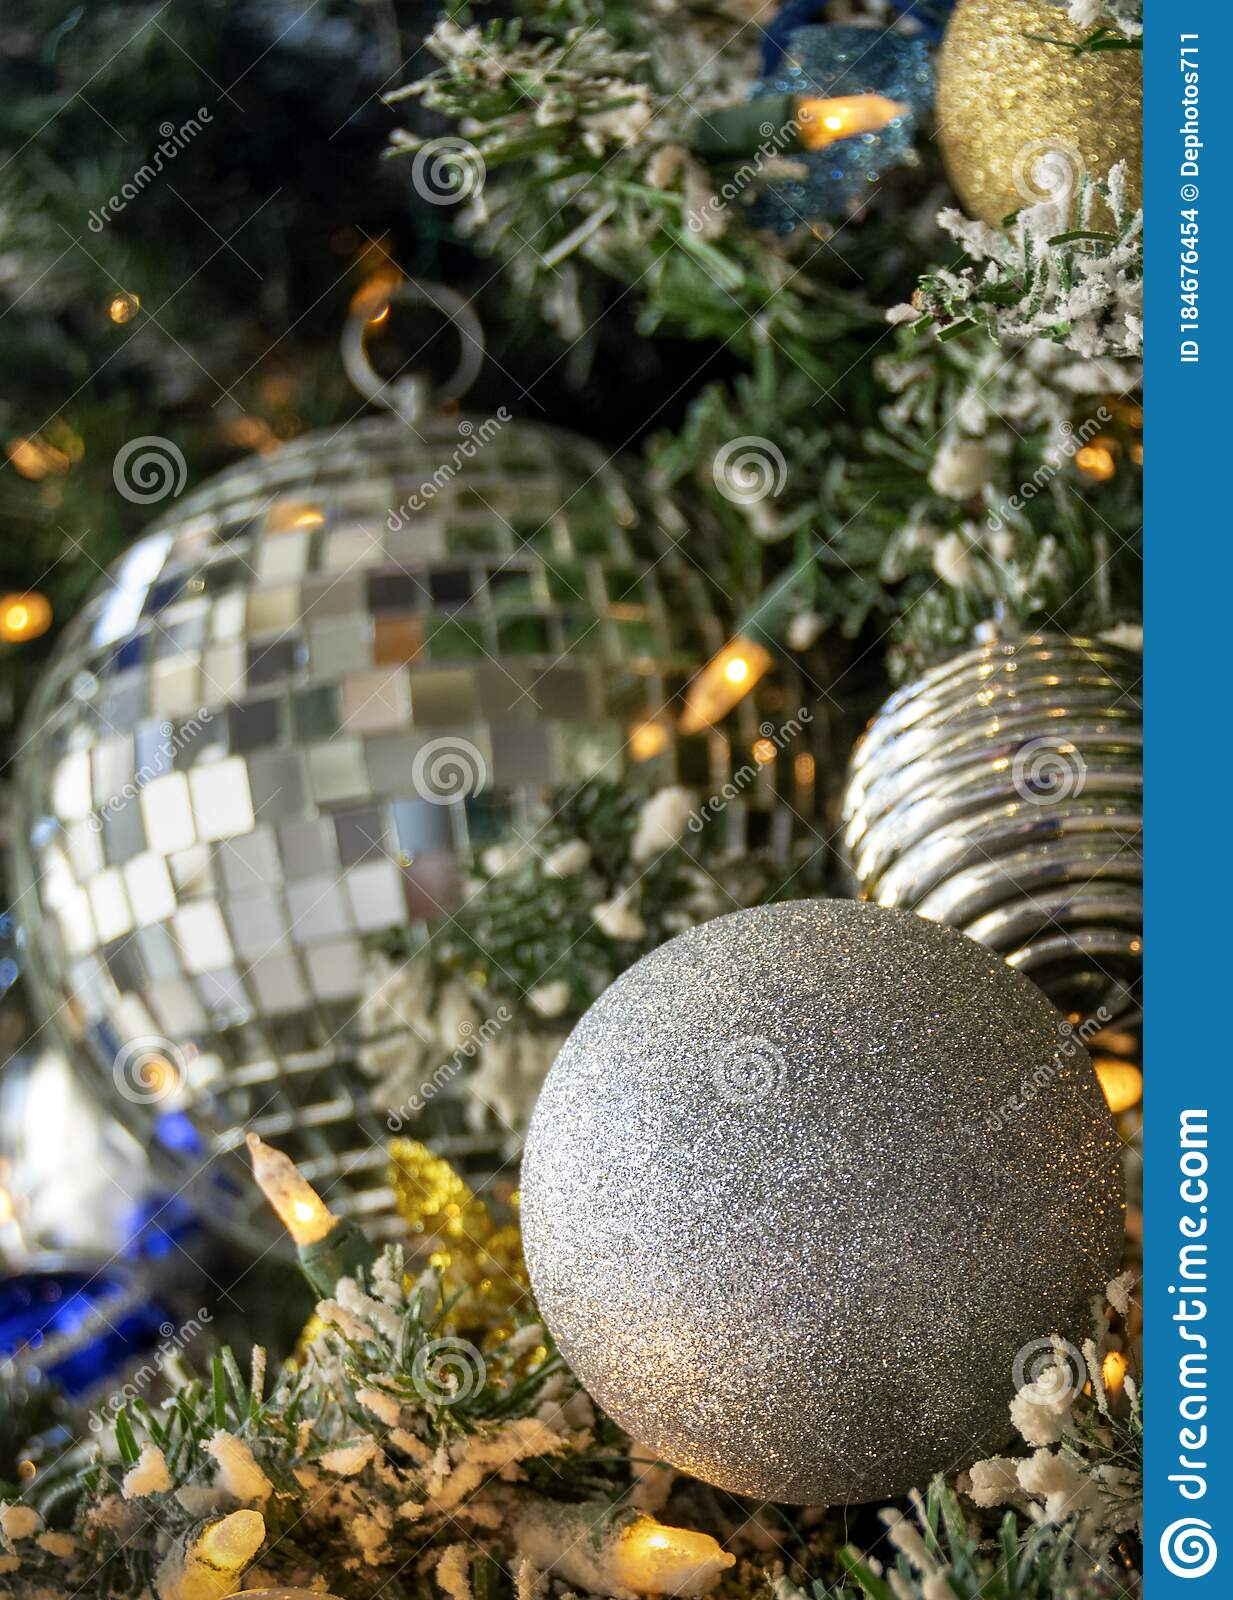 Silver Gold And Blue Christmas Ornaments On A Christmas Tree Stock Photo Image Of Decor Evening 184676454